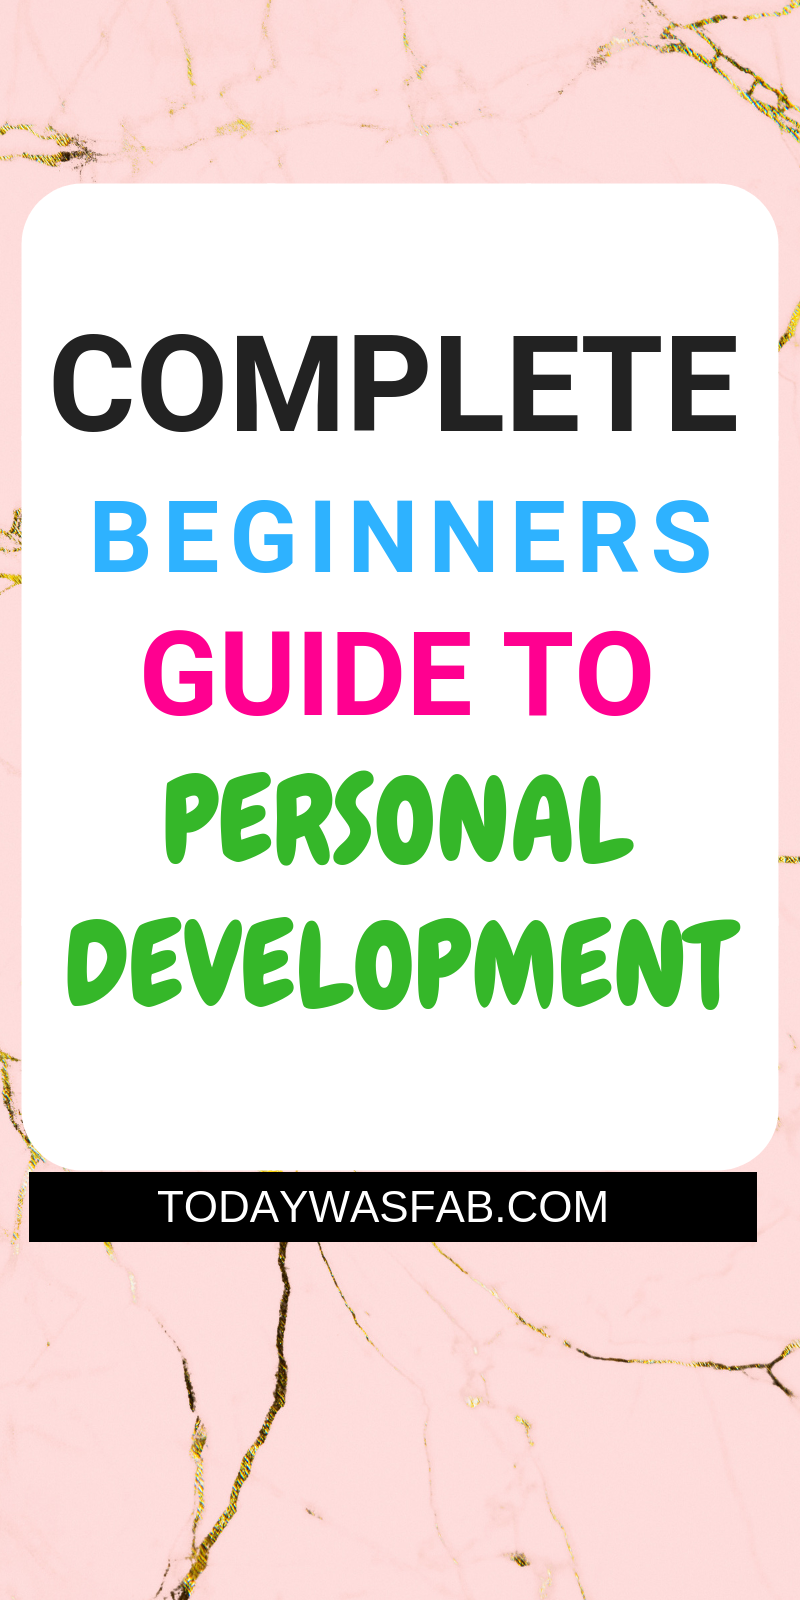 The Complete Guide To Personal Development